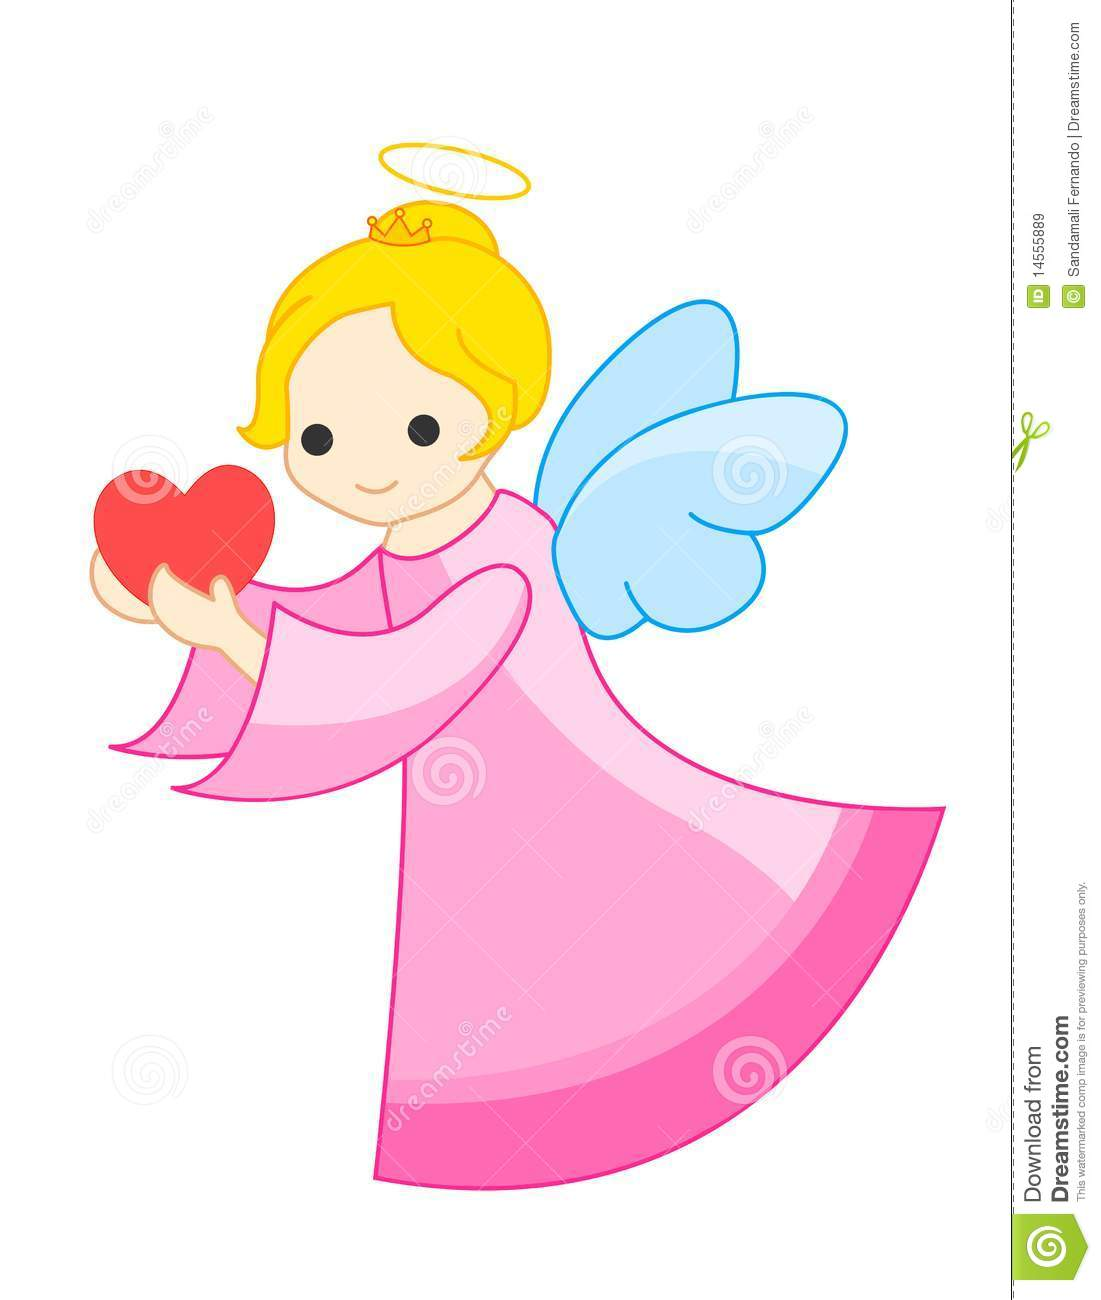 cute angel stock vector image of care  artwork  magic angel clipart black and white angel clipart images